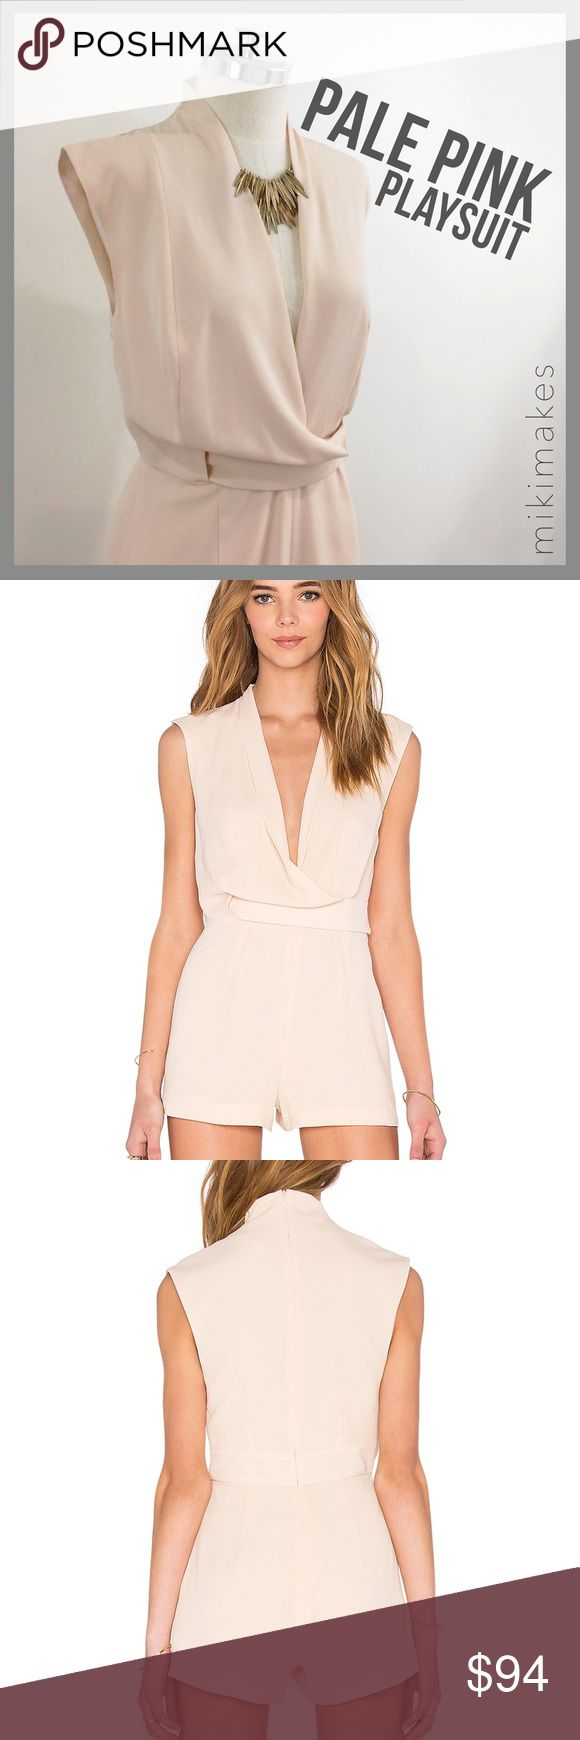 """🆕 FINDERS KEEPERS • NWT pale pink playsuit • NEW very cute & polished play suit from Australian brand FINDERS KEEPERS. Perfect for a weekend date! • easy to throw on & go!  An all in one outfit • high invisible zip in the back of the neck and wraps nicely to the front going into a v-neck • self fabric belt detail • sleeveless so it's perfect for summer  96% polyester 4% elastane  Wash gentle cold dry inside out  ✂️  Bust = 34"""" ✂️  Waist = 29"""" ✂️  Length = 30""""  • sorry no trades • please…"""